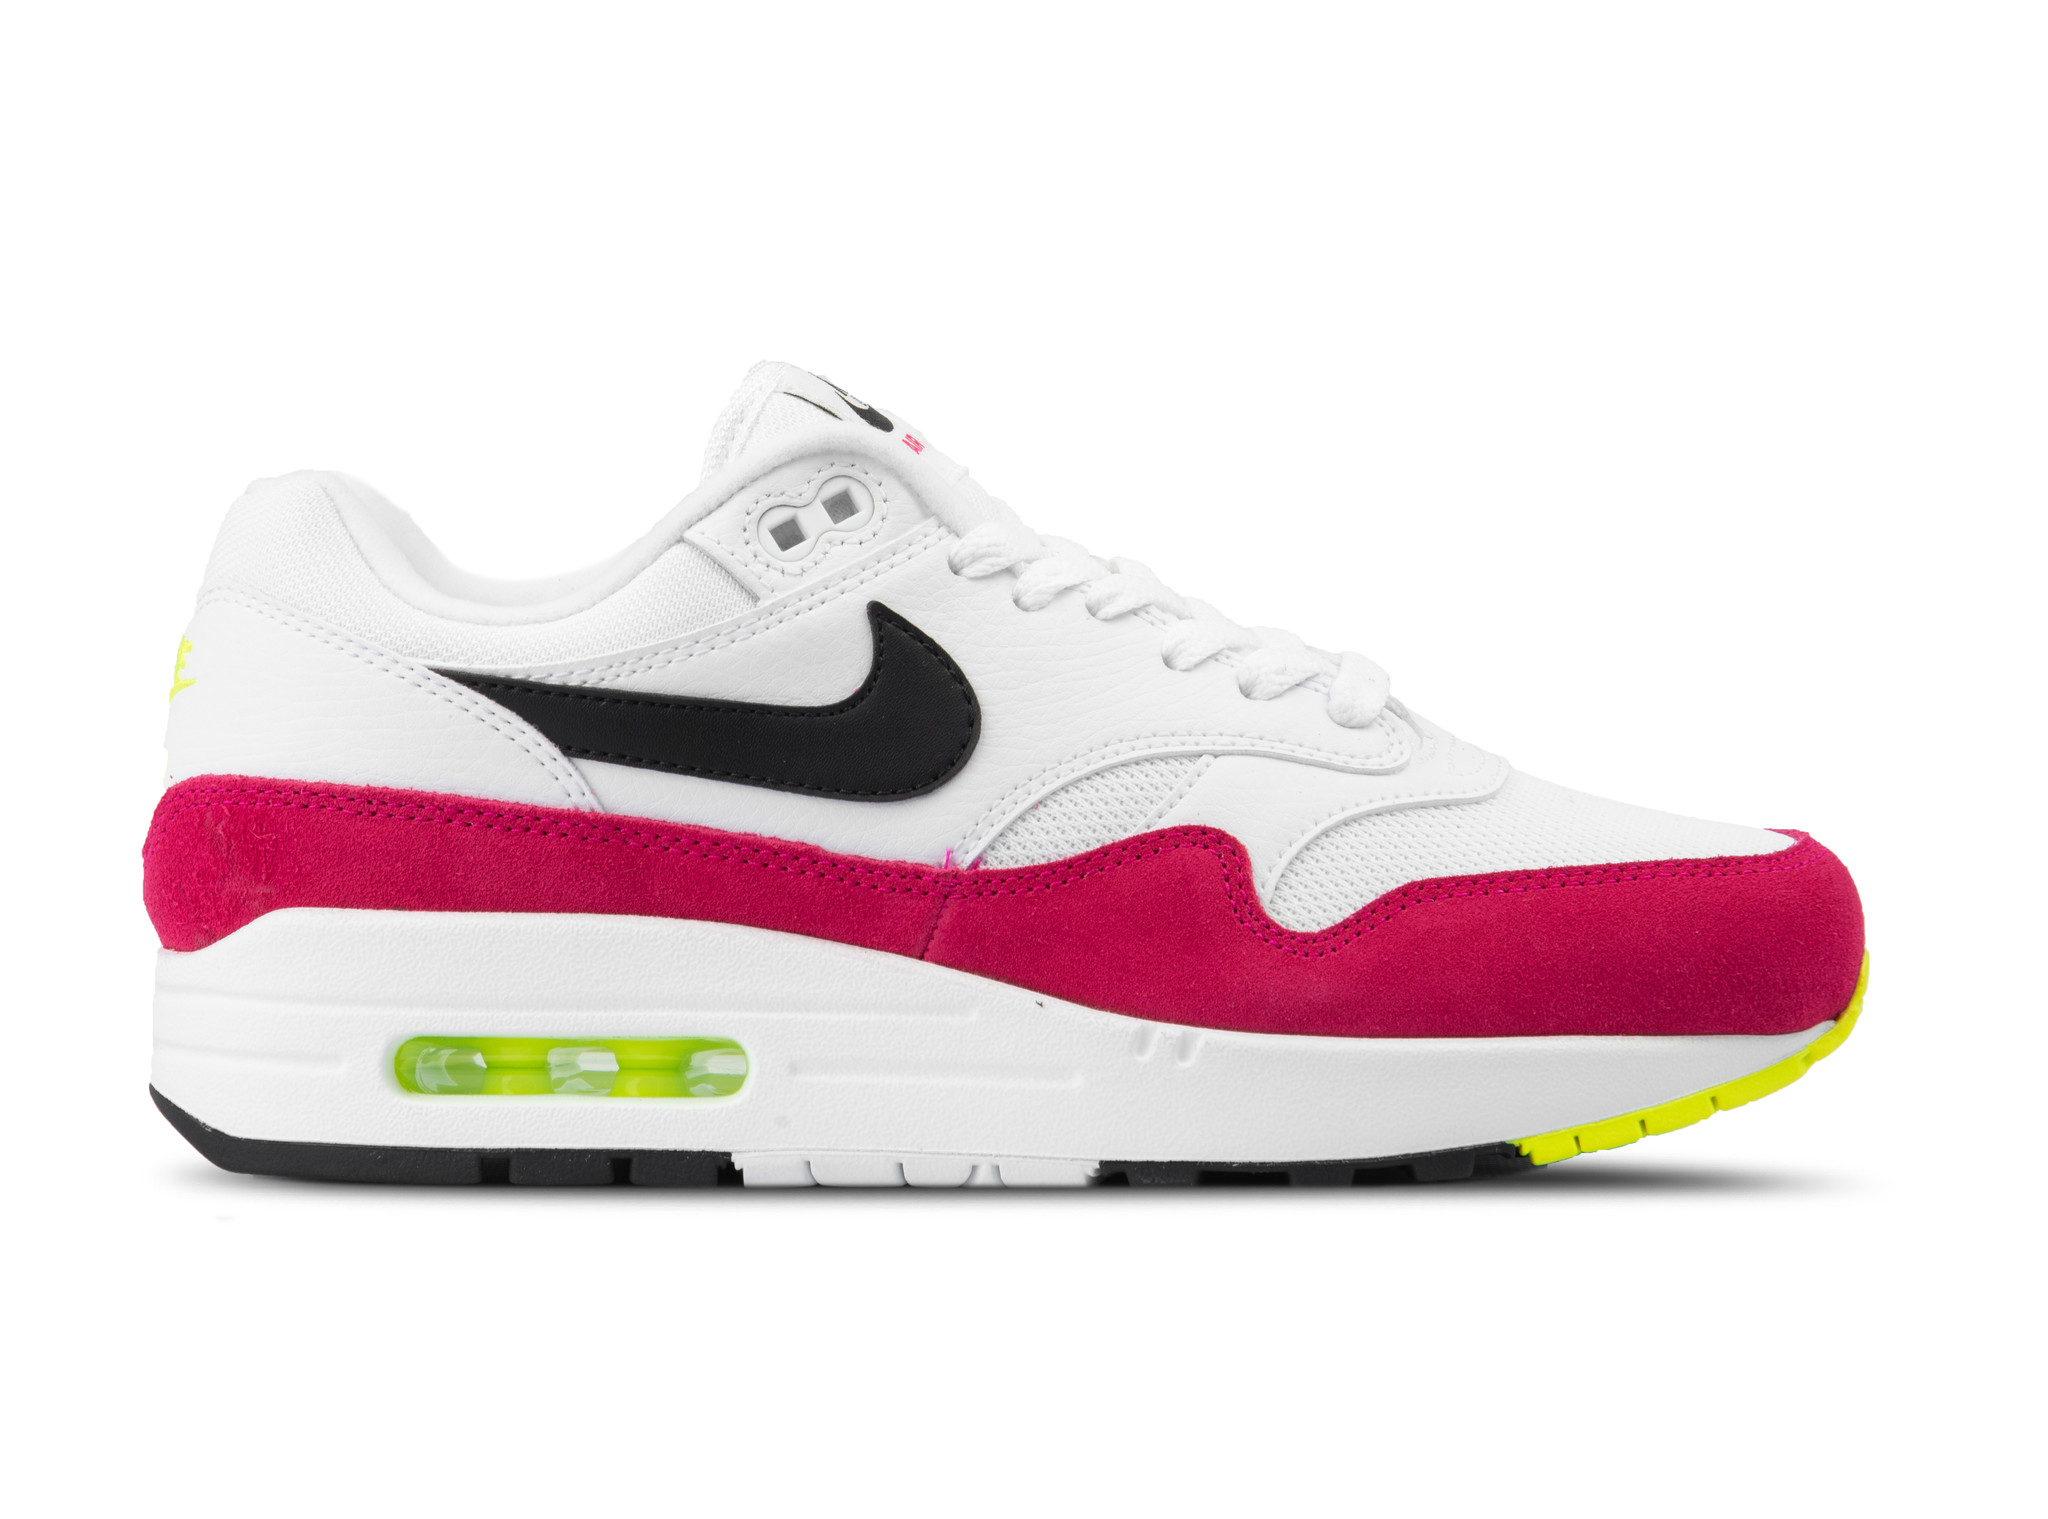 Nike Air Max 1 White Black Volt Rush Pink AH8145 111 | Bruut